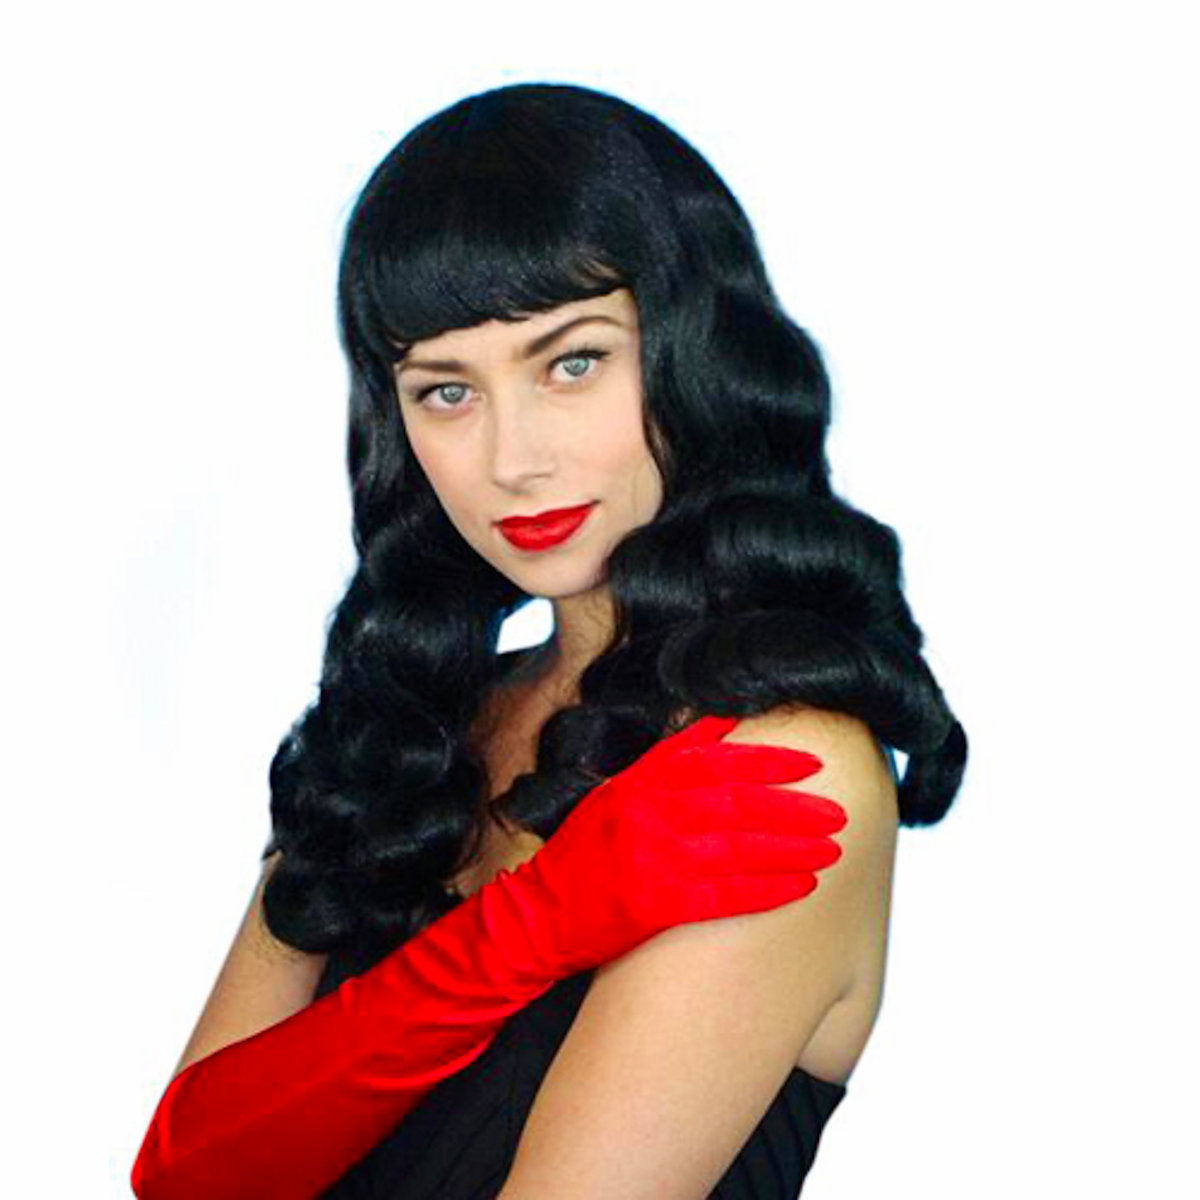 1940s Burlesque Bettie Page Long Black Hair Costume Wig